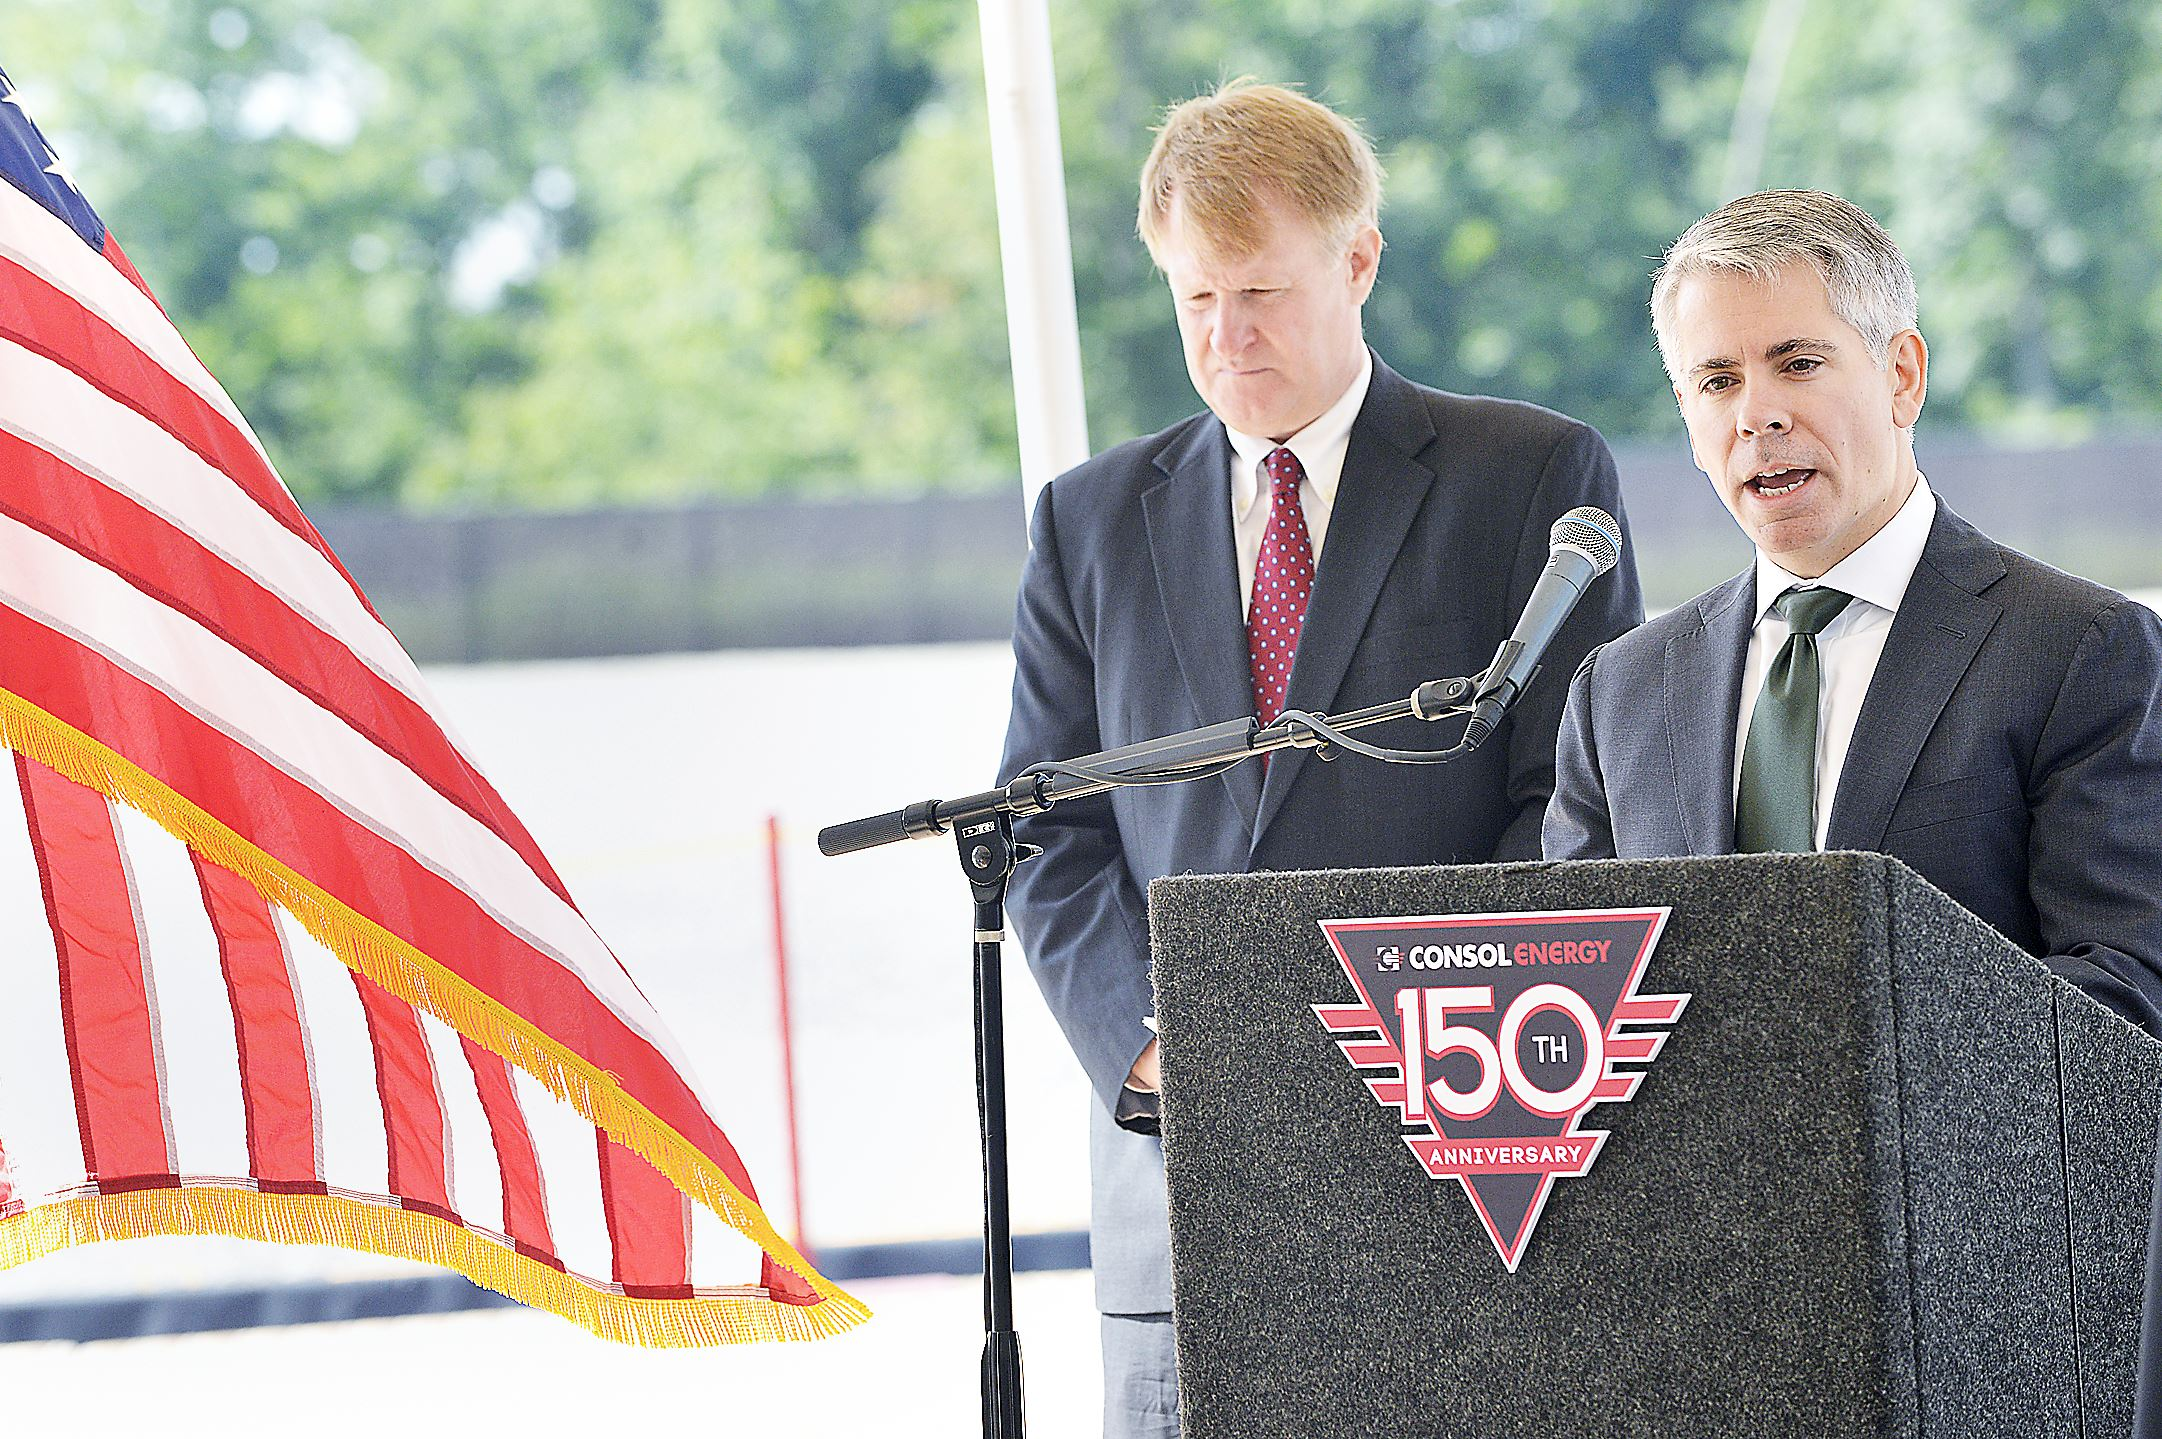 Nick Deluliis, right, CEO of Consol Energy Nick Deluliis, right, CEO of Consol Energy, talks about the process of developing the new Marcellus Shale well site near Pittsburgh International Airport. At left is Allegheny County Chief Executive Rich Fitzgerald.